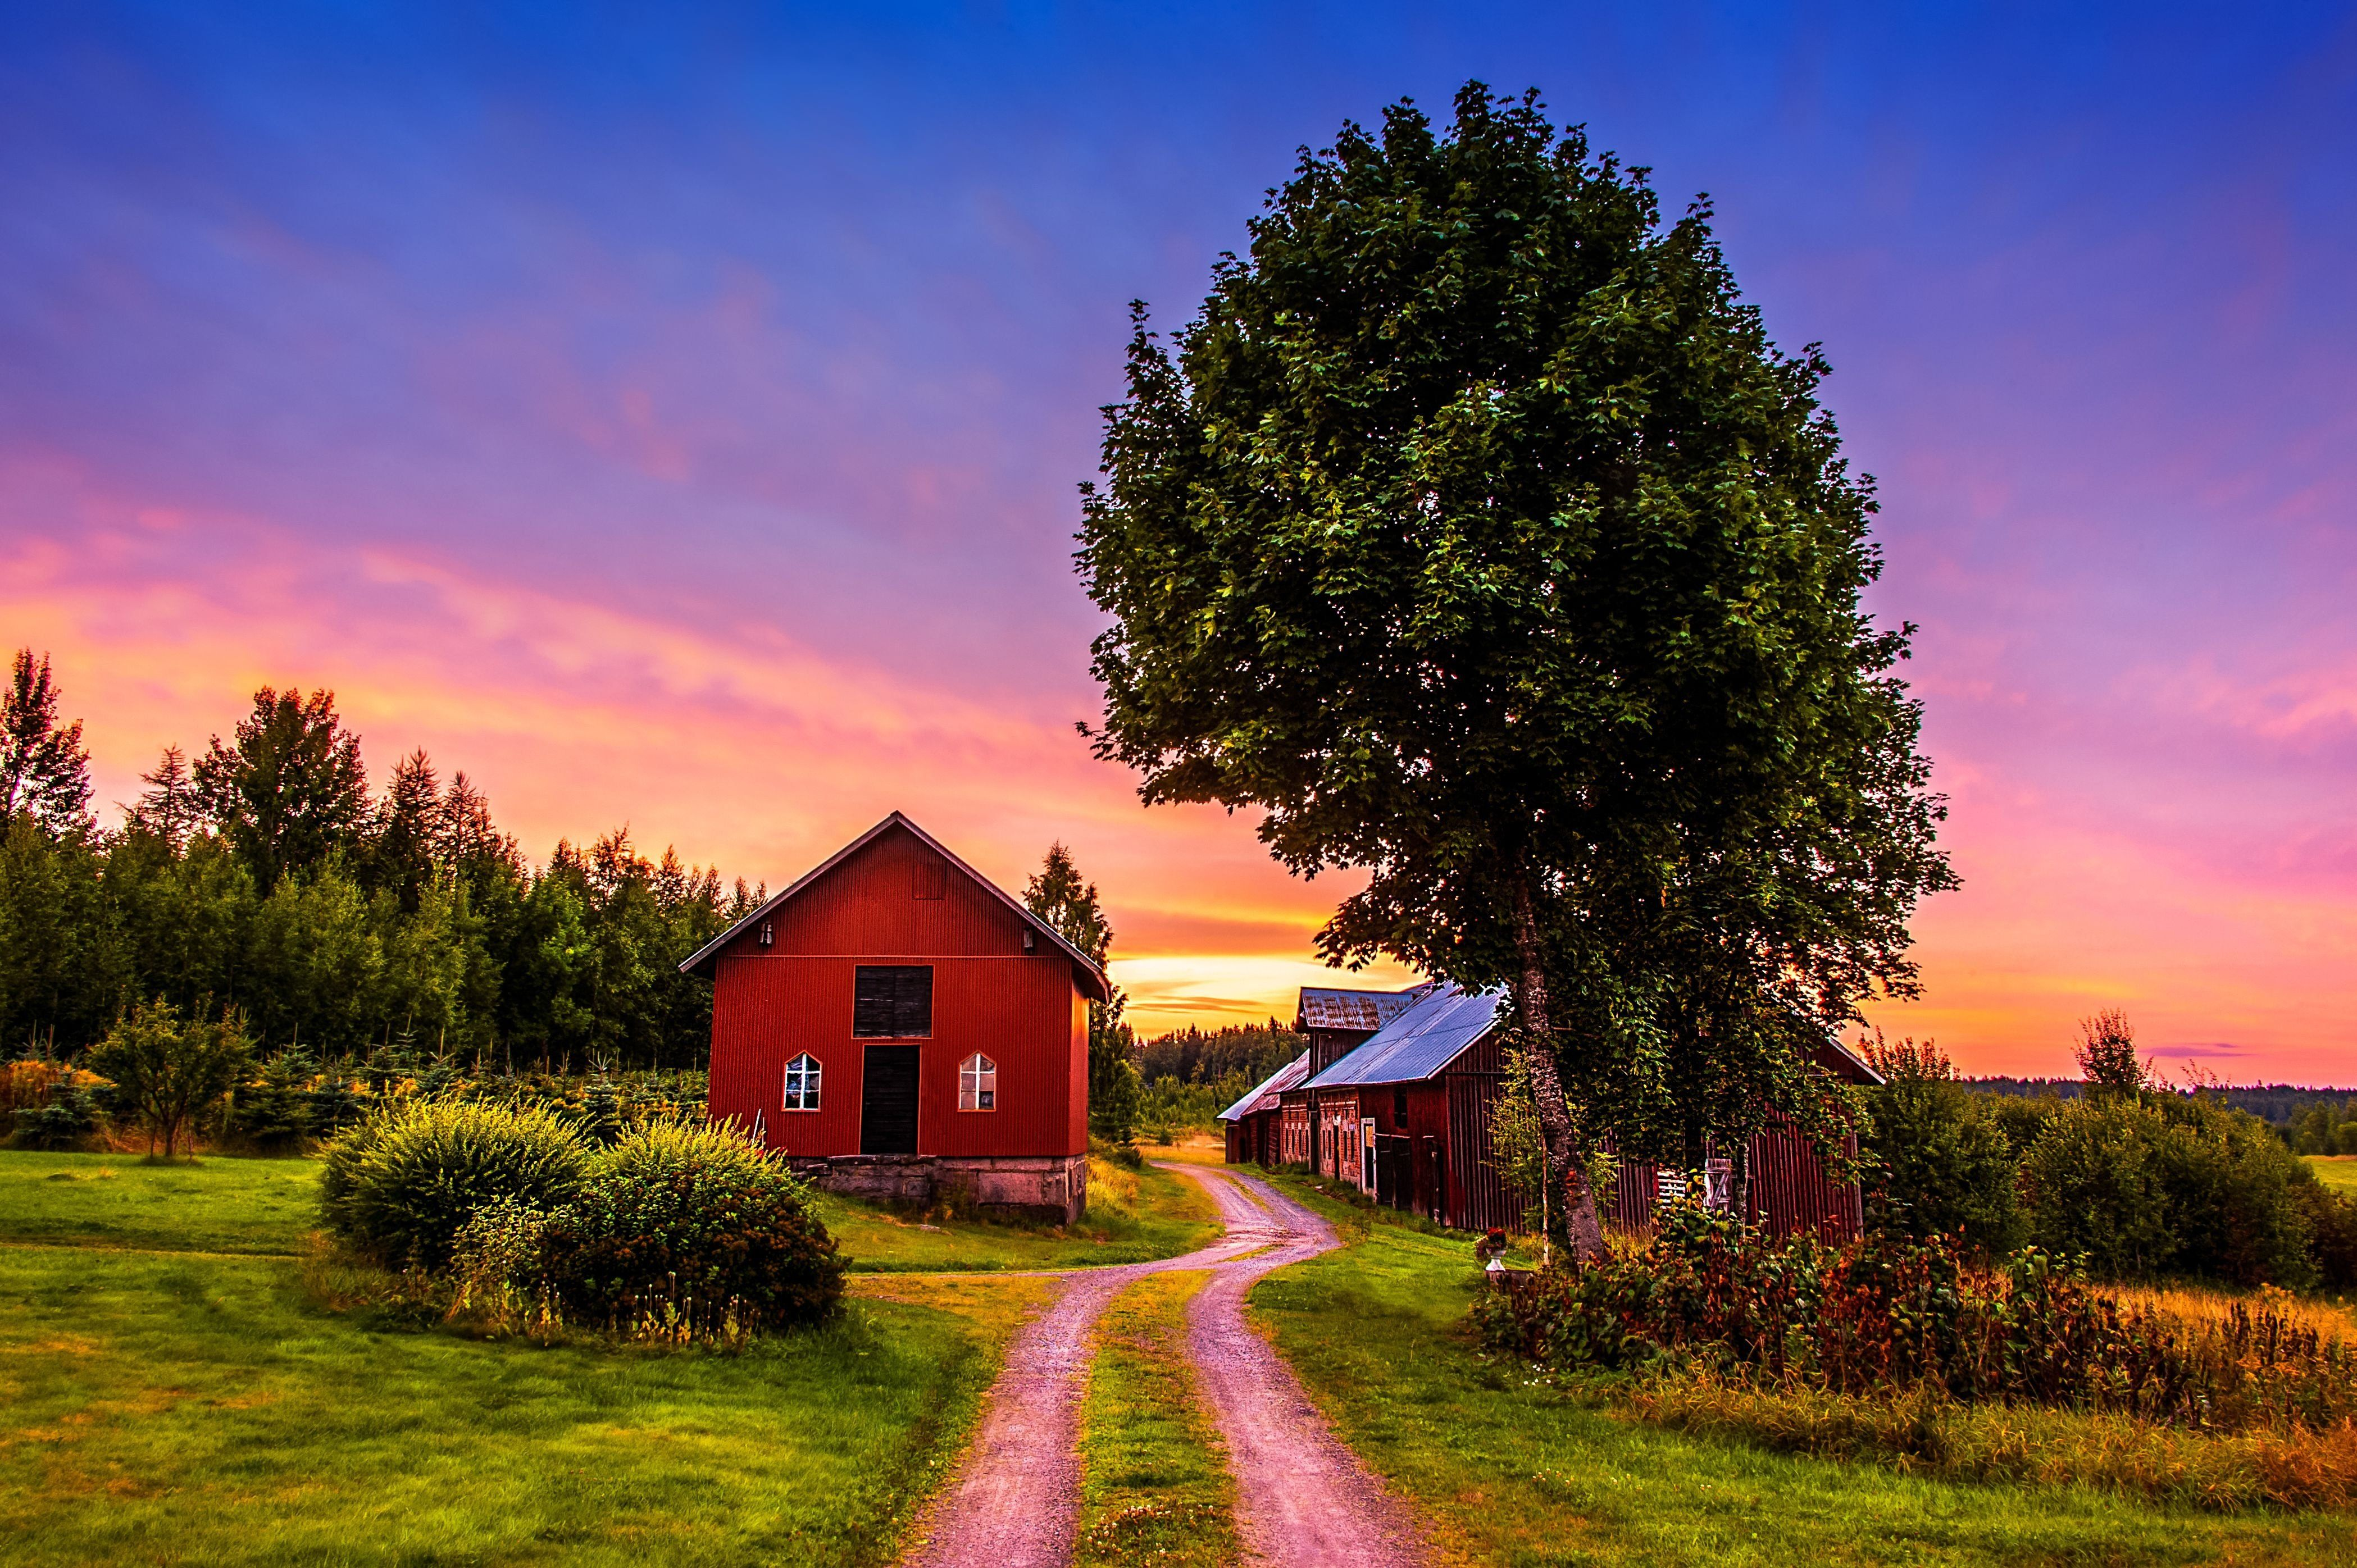 Sunset Trees Road Home Landscape Rustic Farm House Wallpaper Background